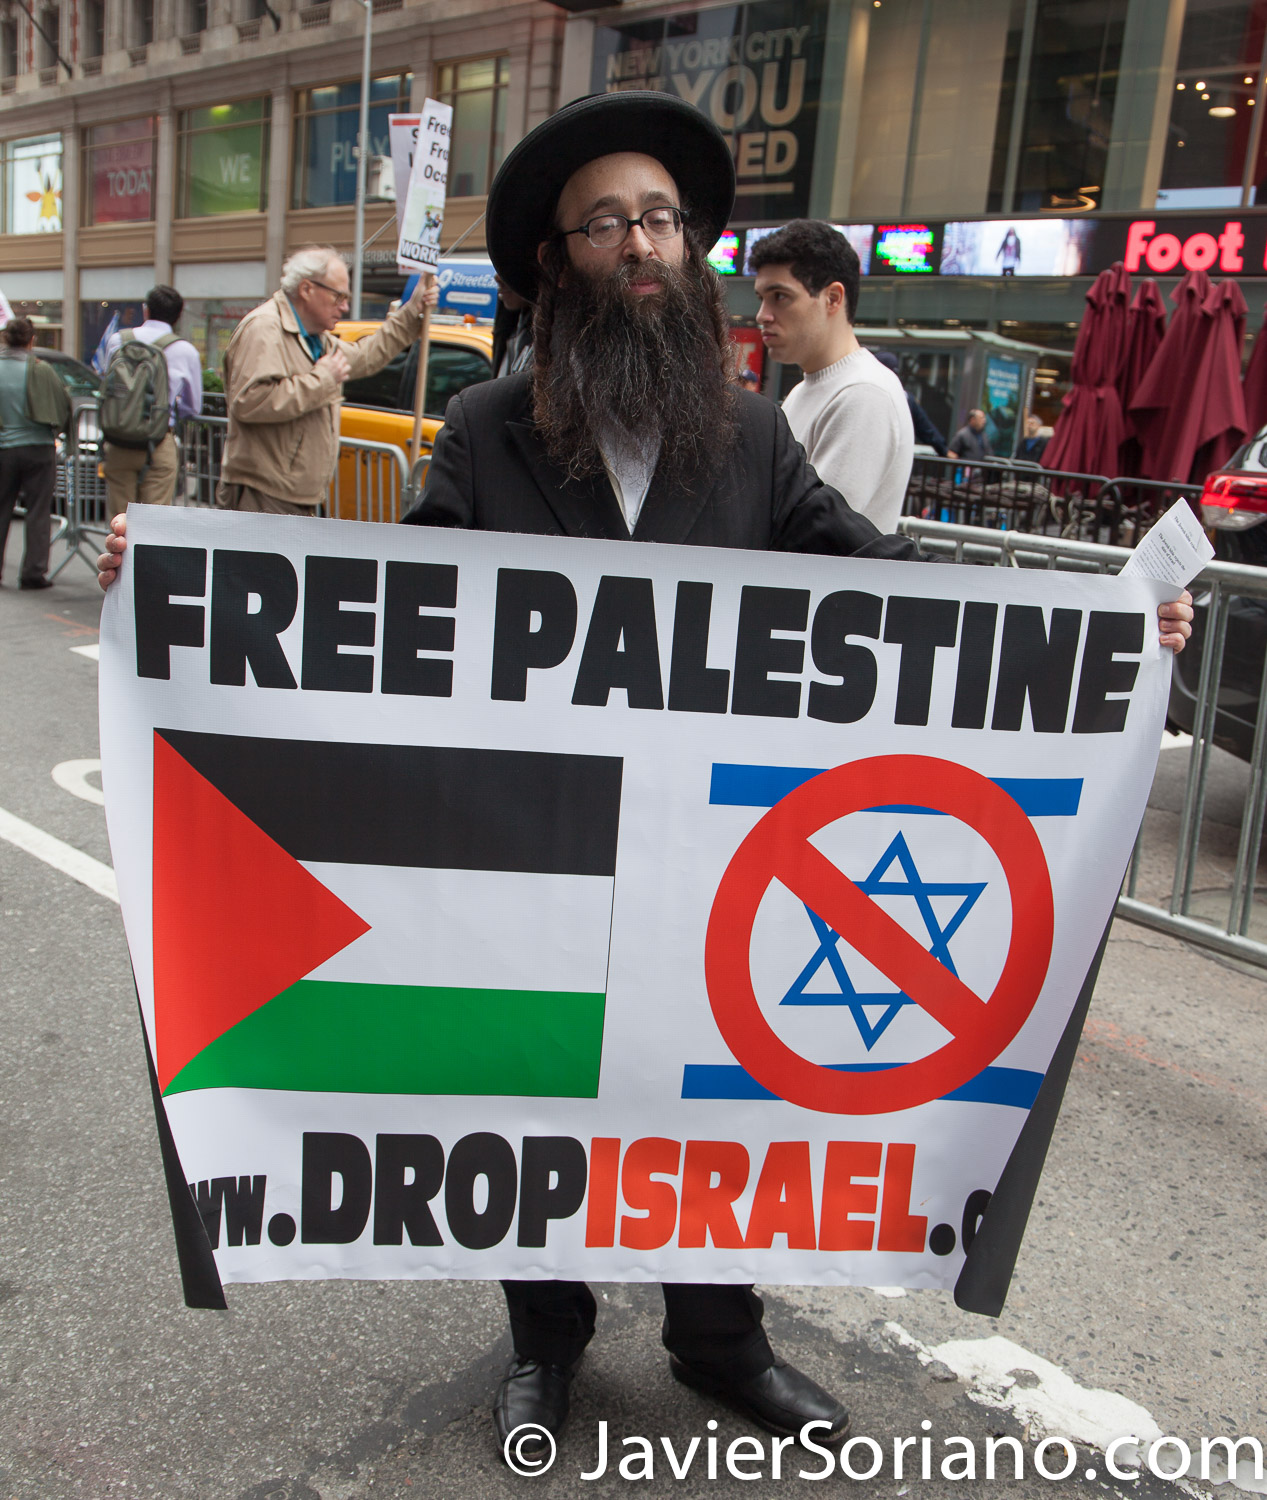 5/18/2018. New York City - A Jew in Times Square supporting Palestine. Photo by Javier Soriano/www.JavierSoriano.com